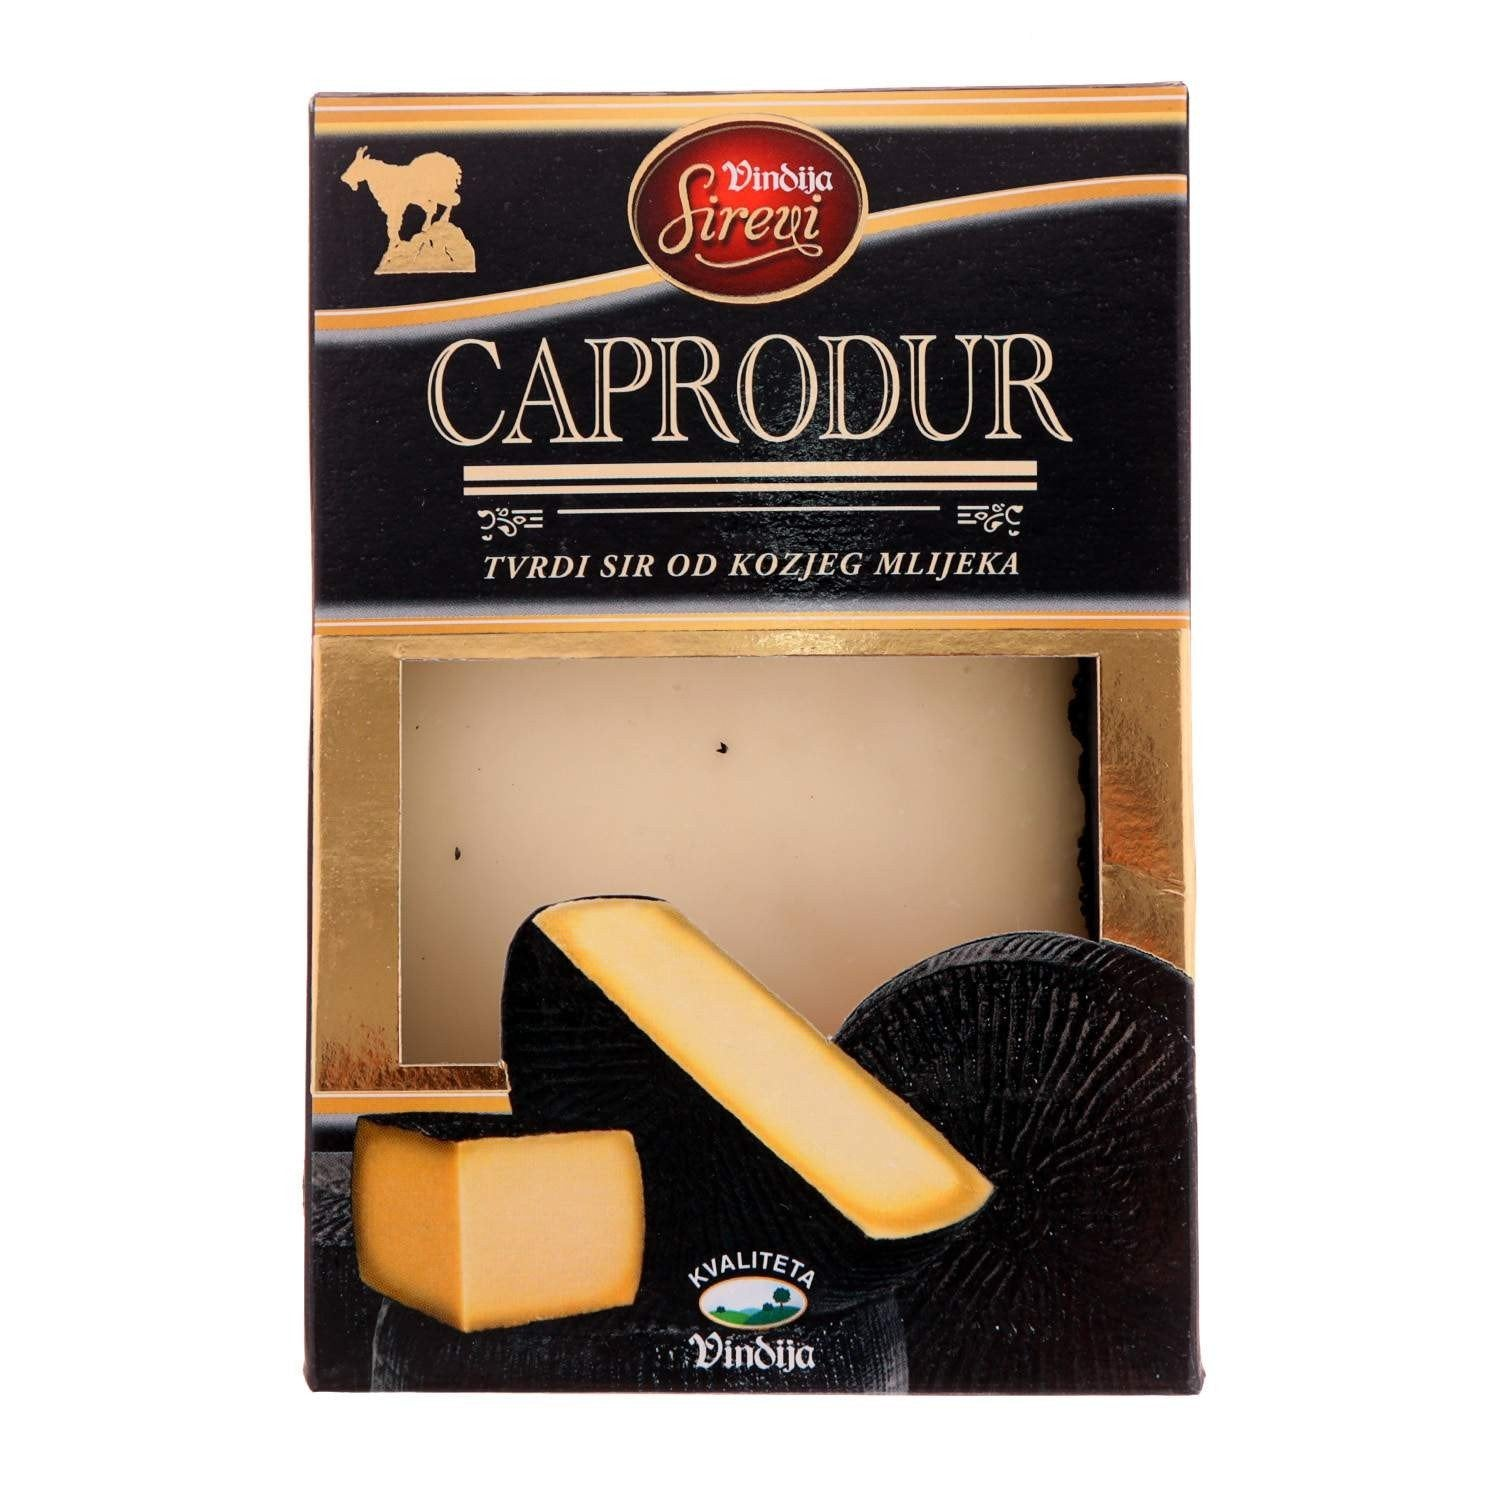 aga>Carprodur hard cheese Vindija 250 g